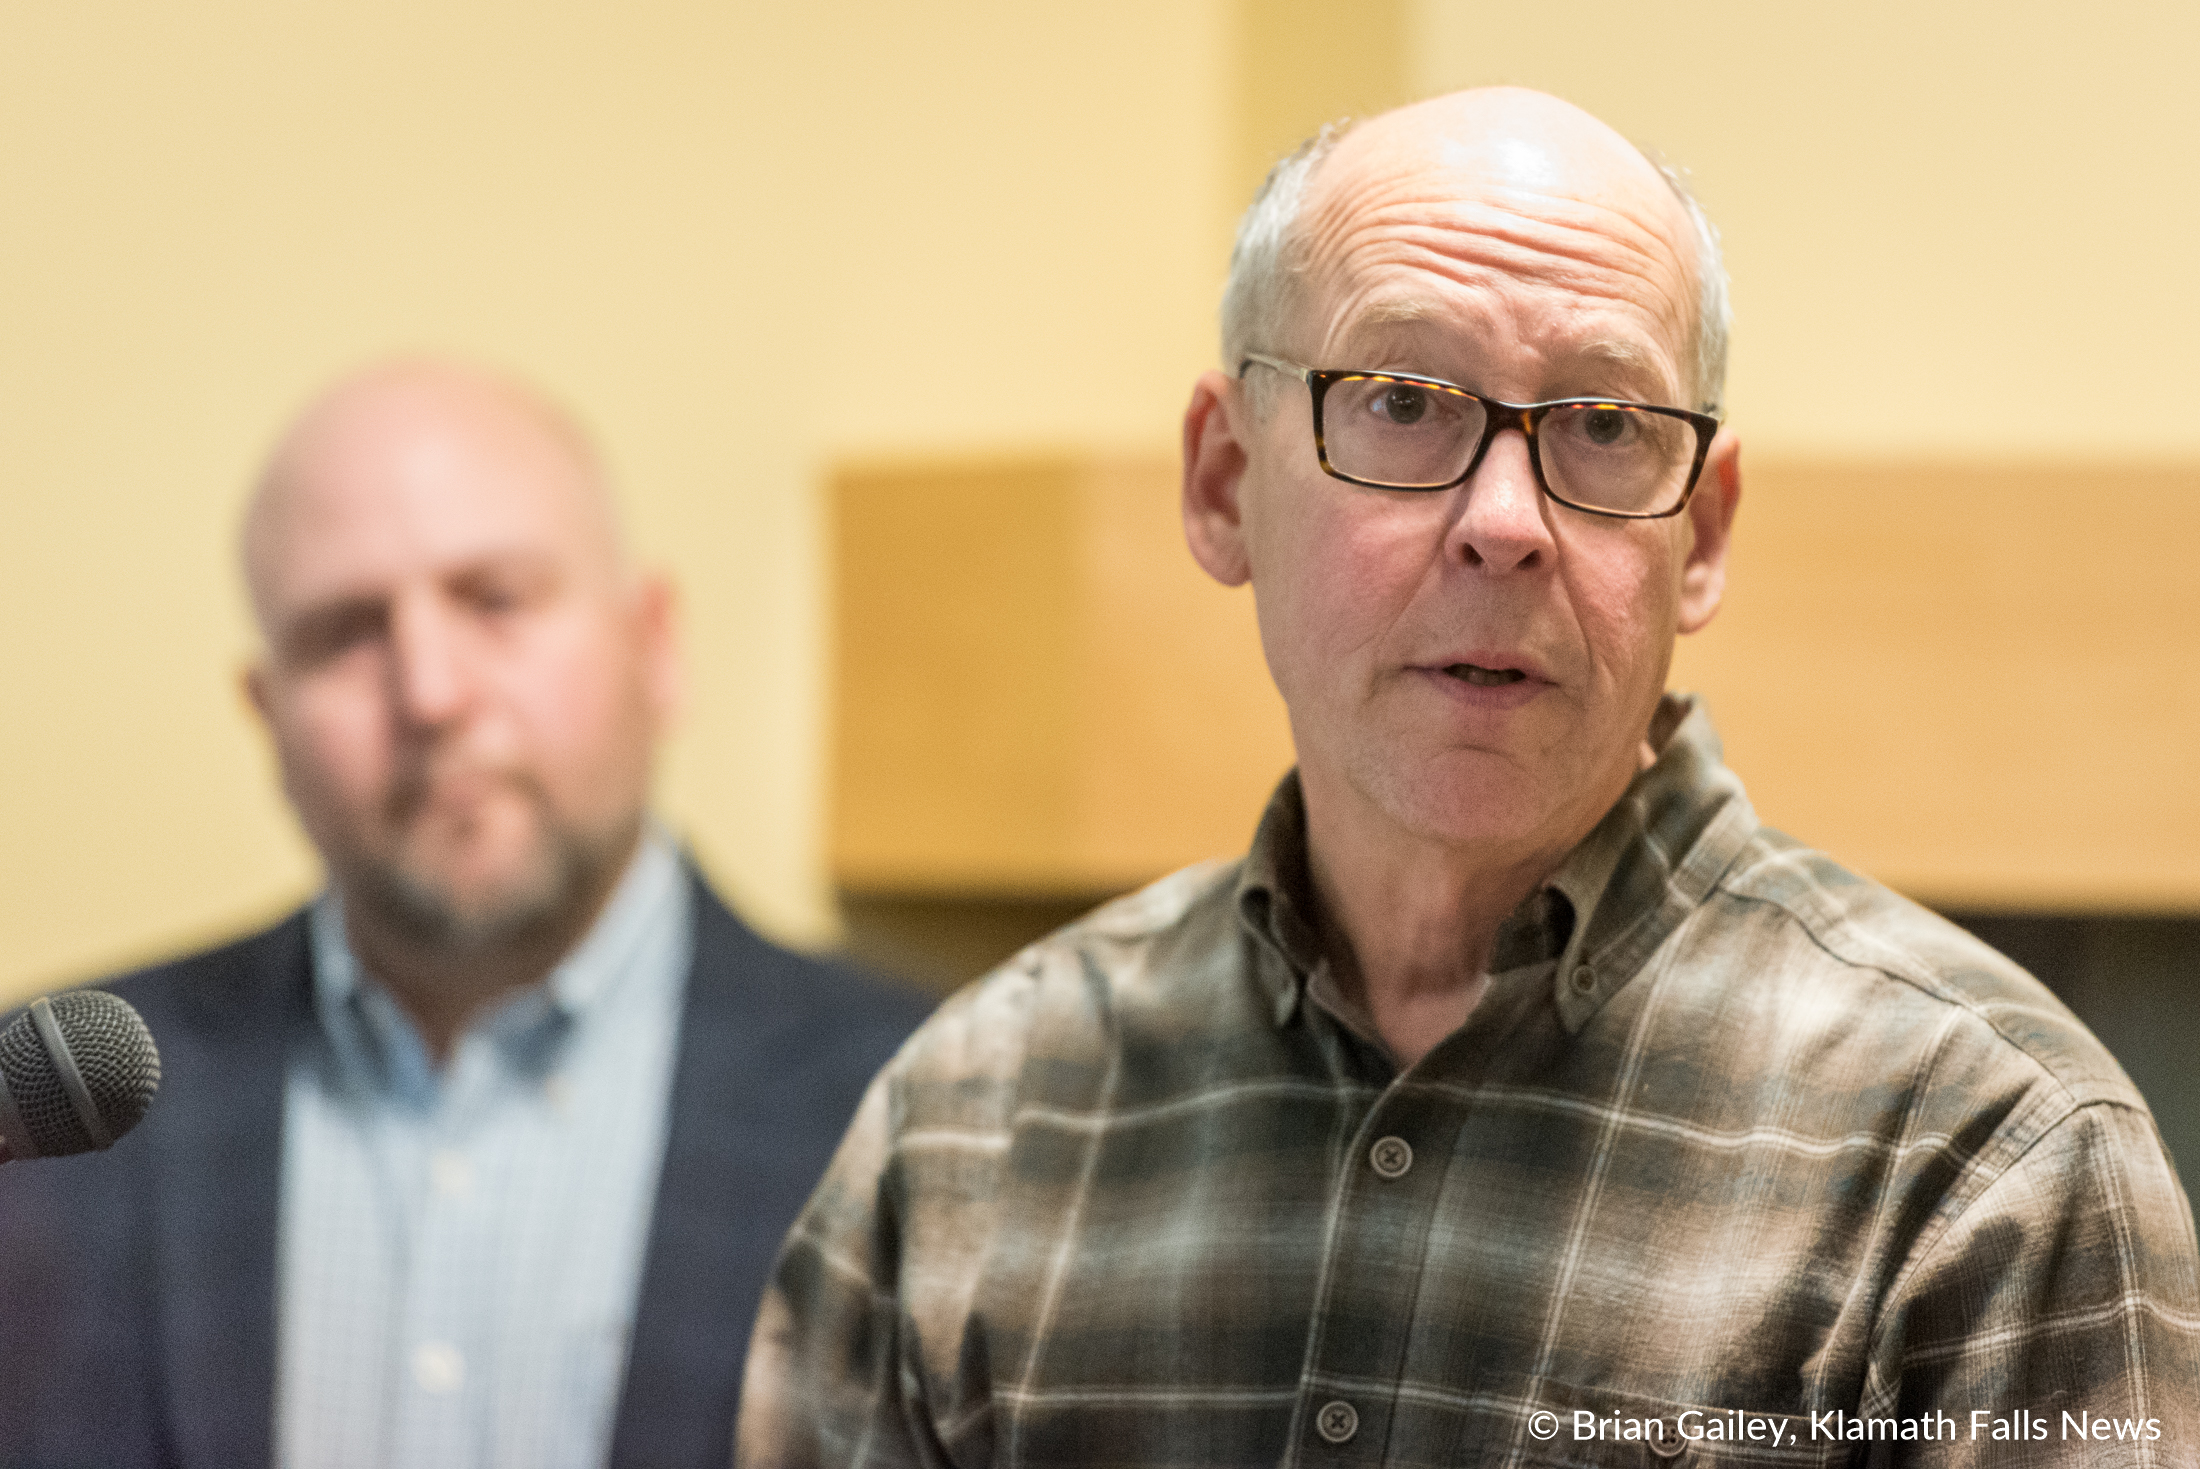 Congressman Walden Announces Klamath Infrastructure Improvement Act to a standing room only crowd at the Klamath County Chamber of Commerce. (Brian Gailey)